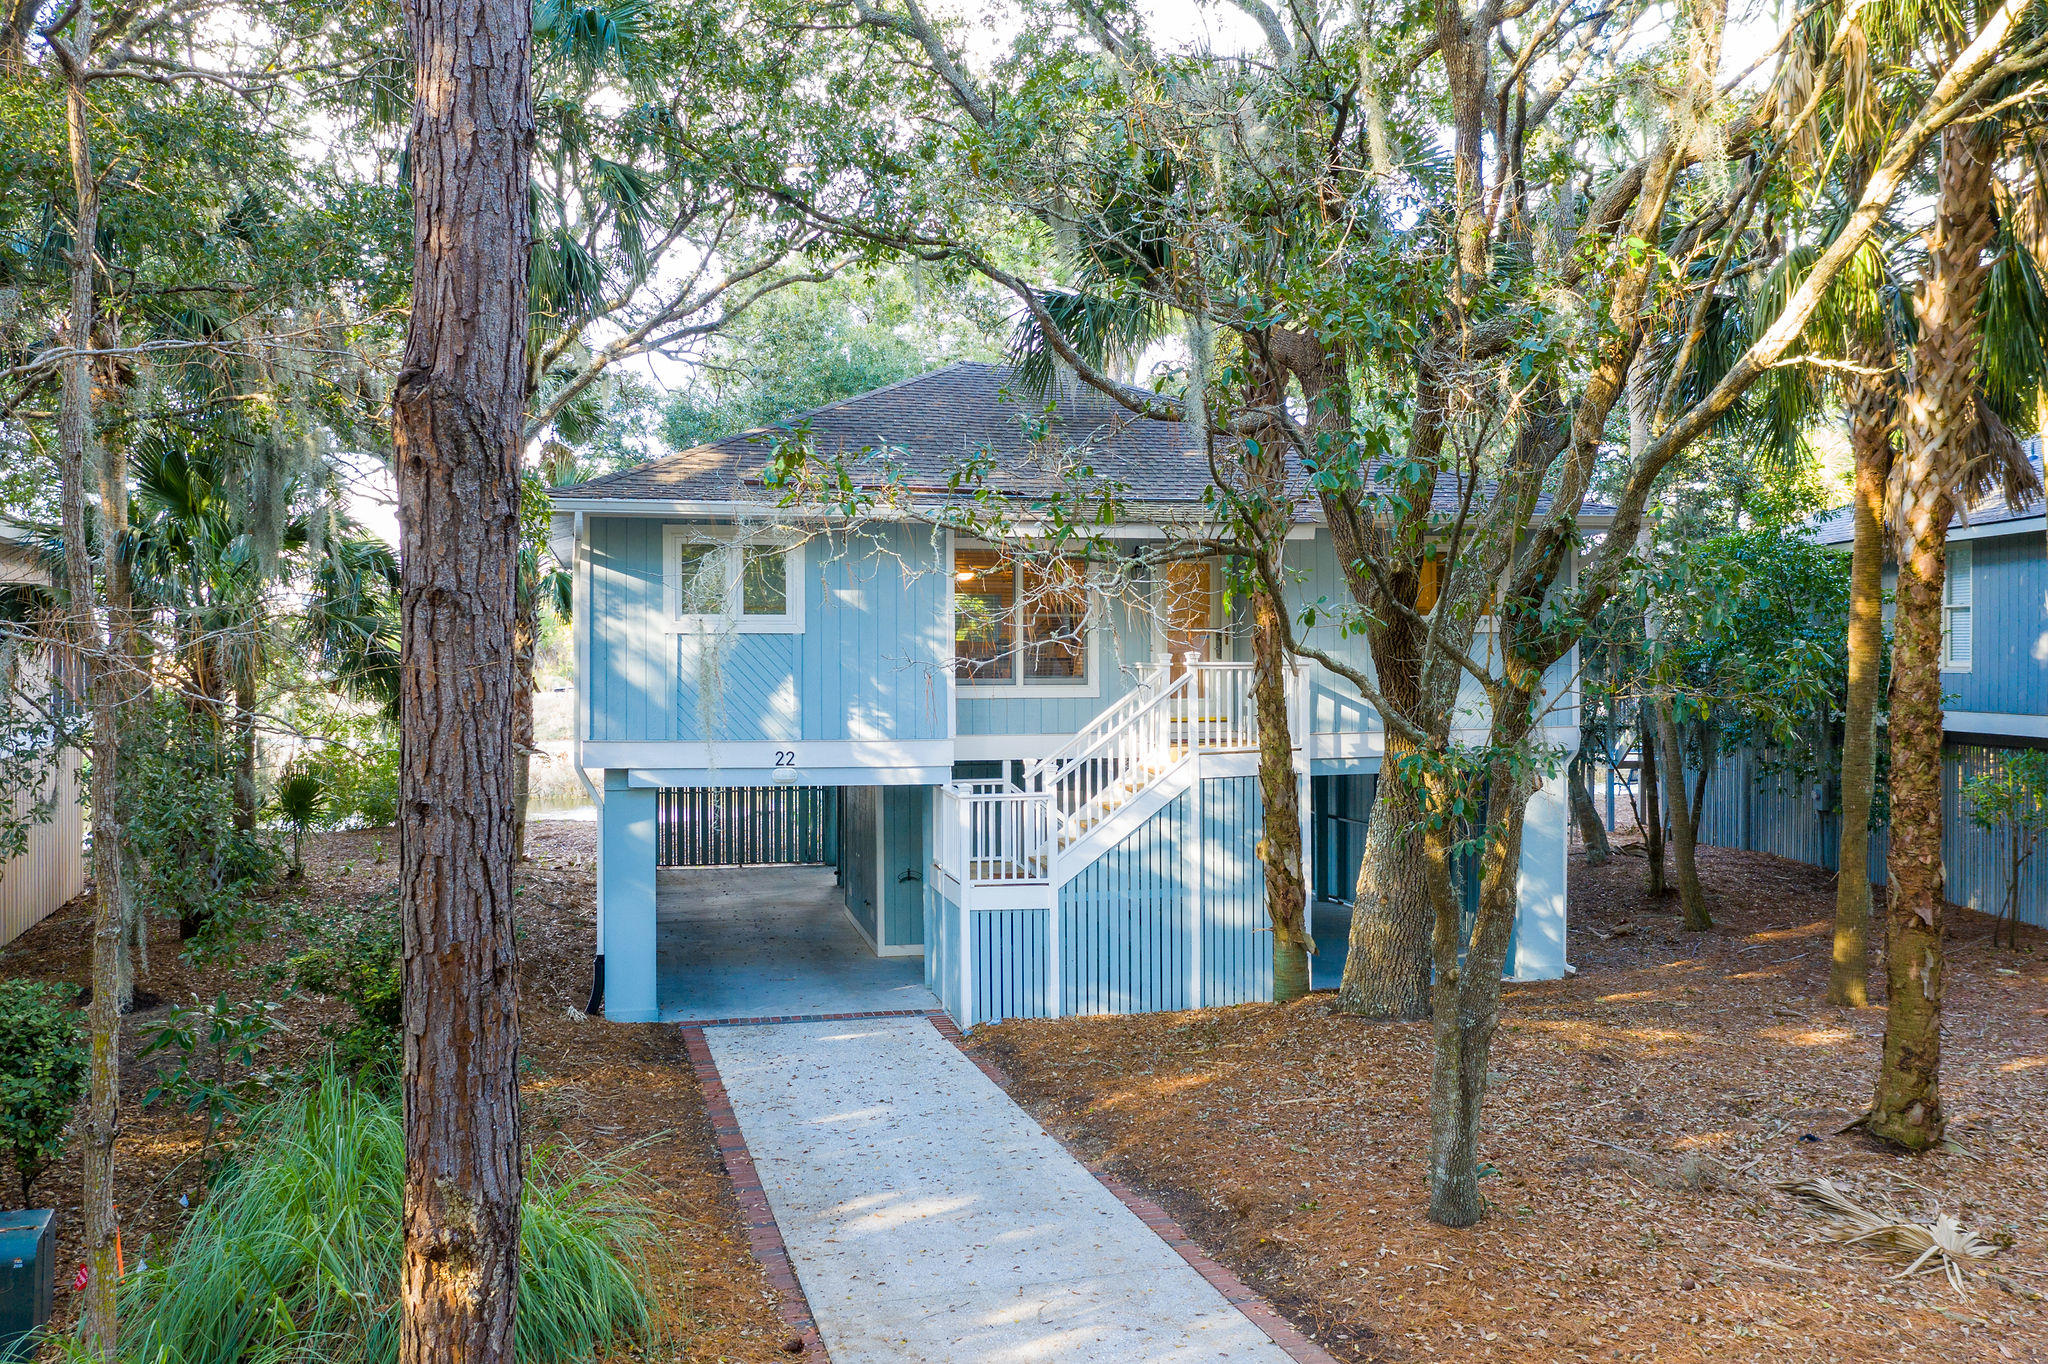 Wild Dunes Homes For Sale - 22 Twin Oaks, Isle of Palms, SC - 16